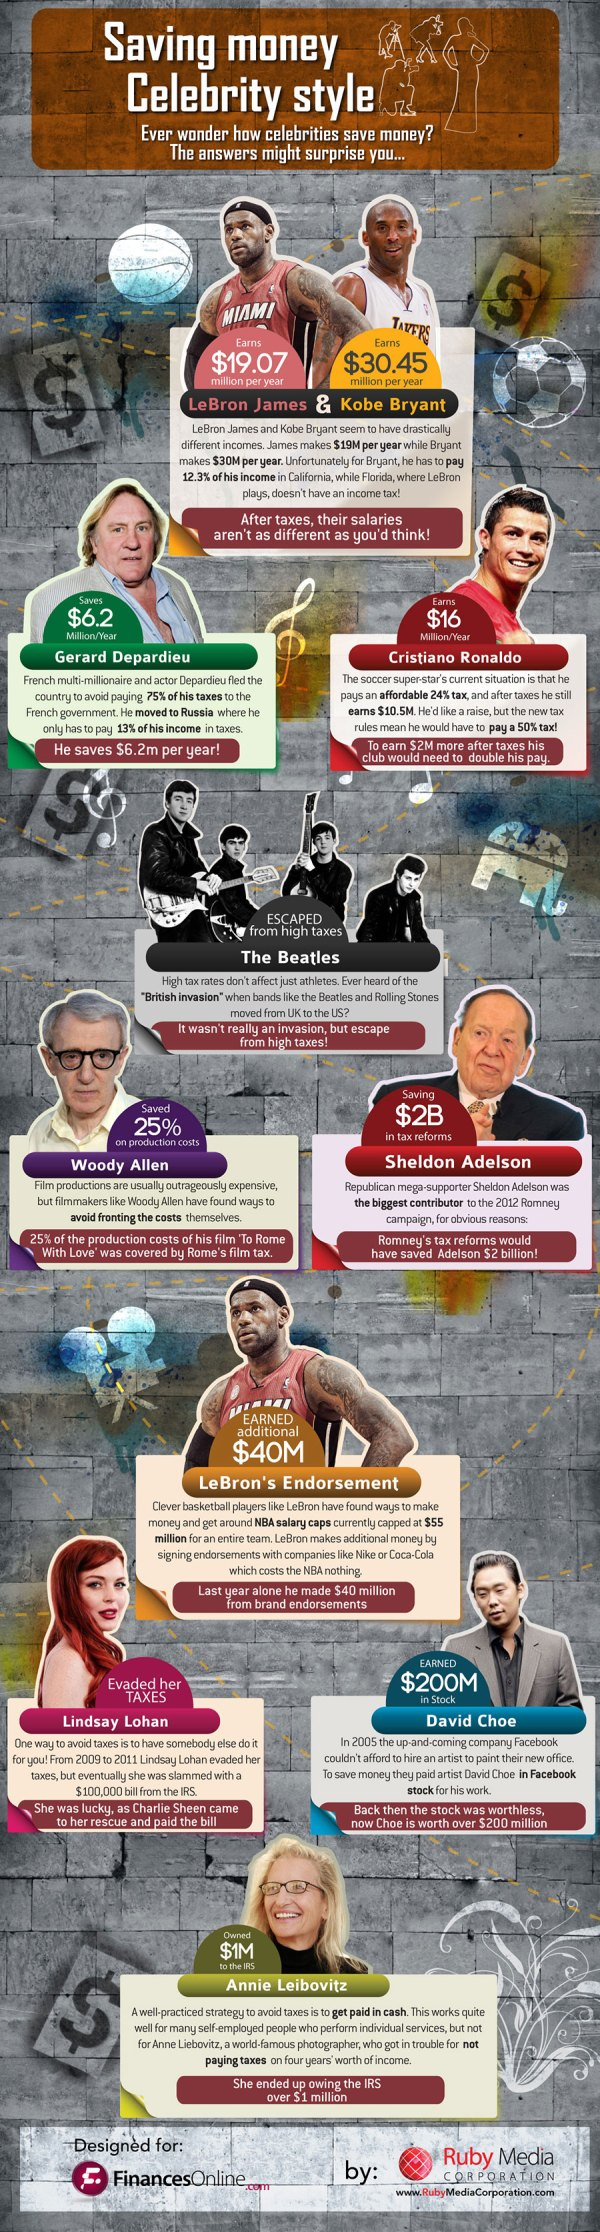 Net Worth of Celebrities: Smart Tricks That LeBron and Other Stars Use To Save Cash